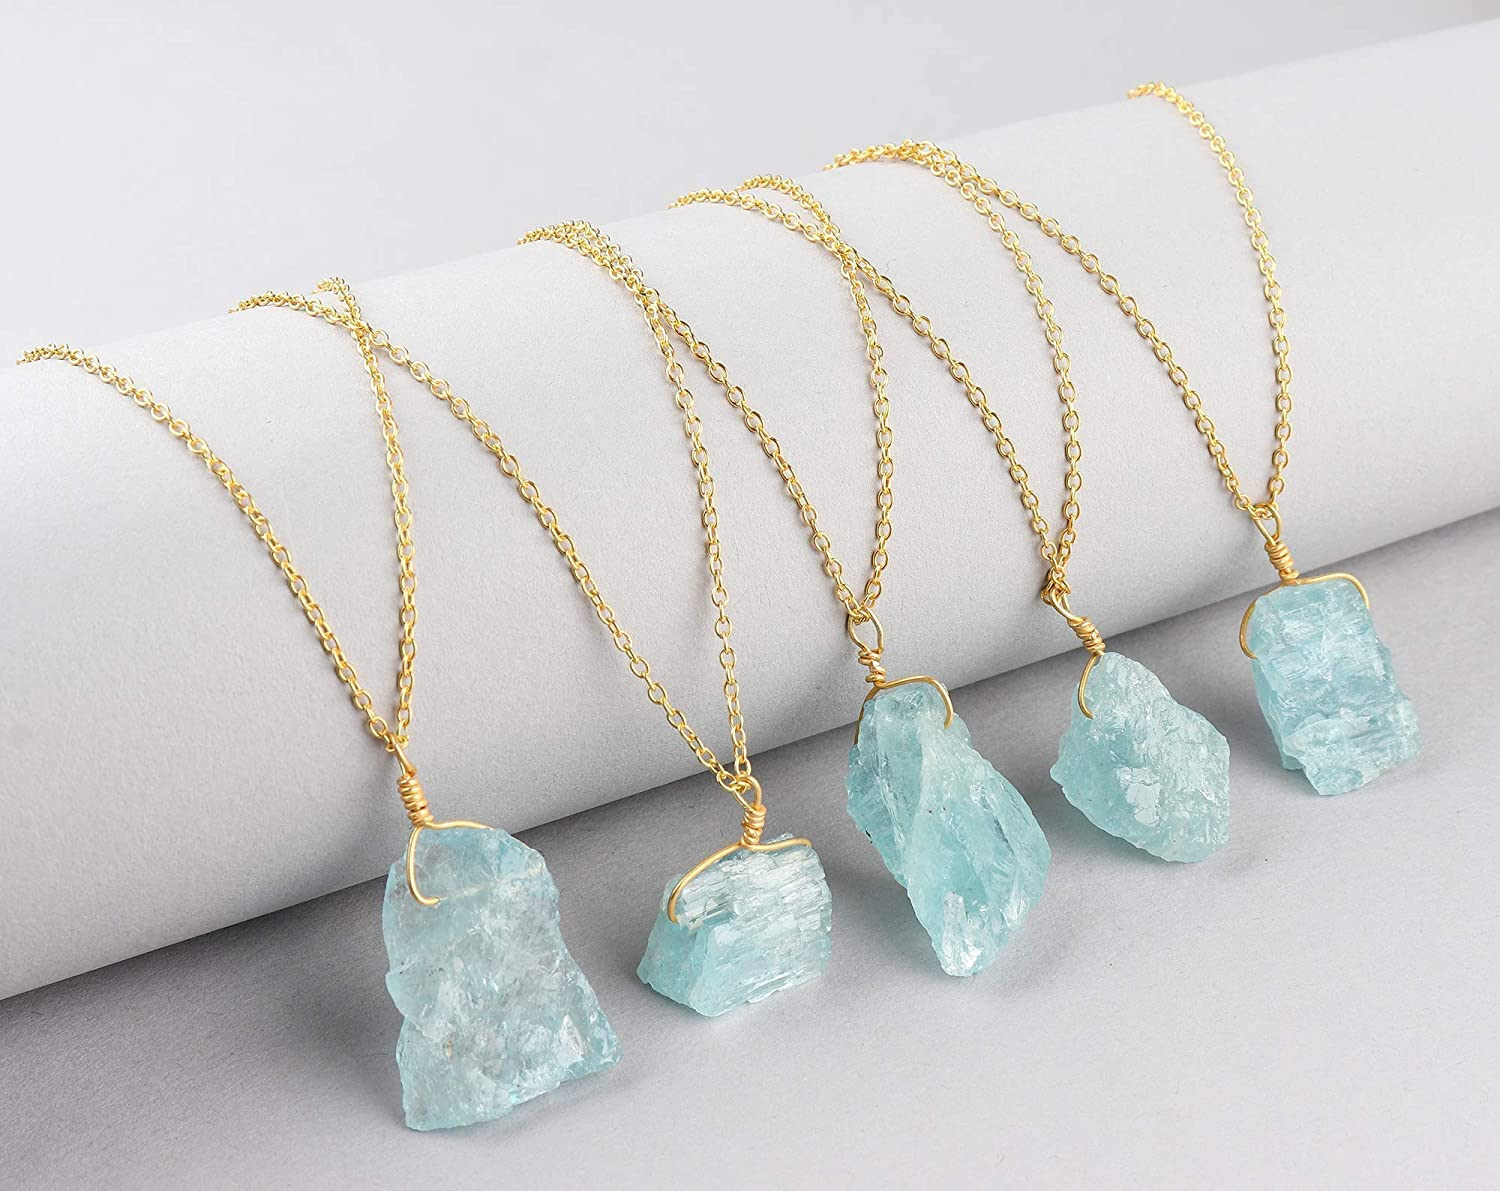 March Birthstone Handmade Crystal Women Dainty Jewelry Raw Aquamarine Pendant Necklace in 14K Gold Filled 925 Sterling Silver Chain 18